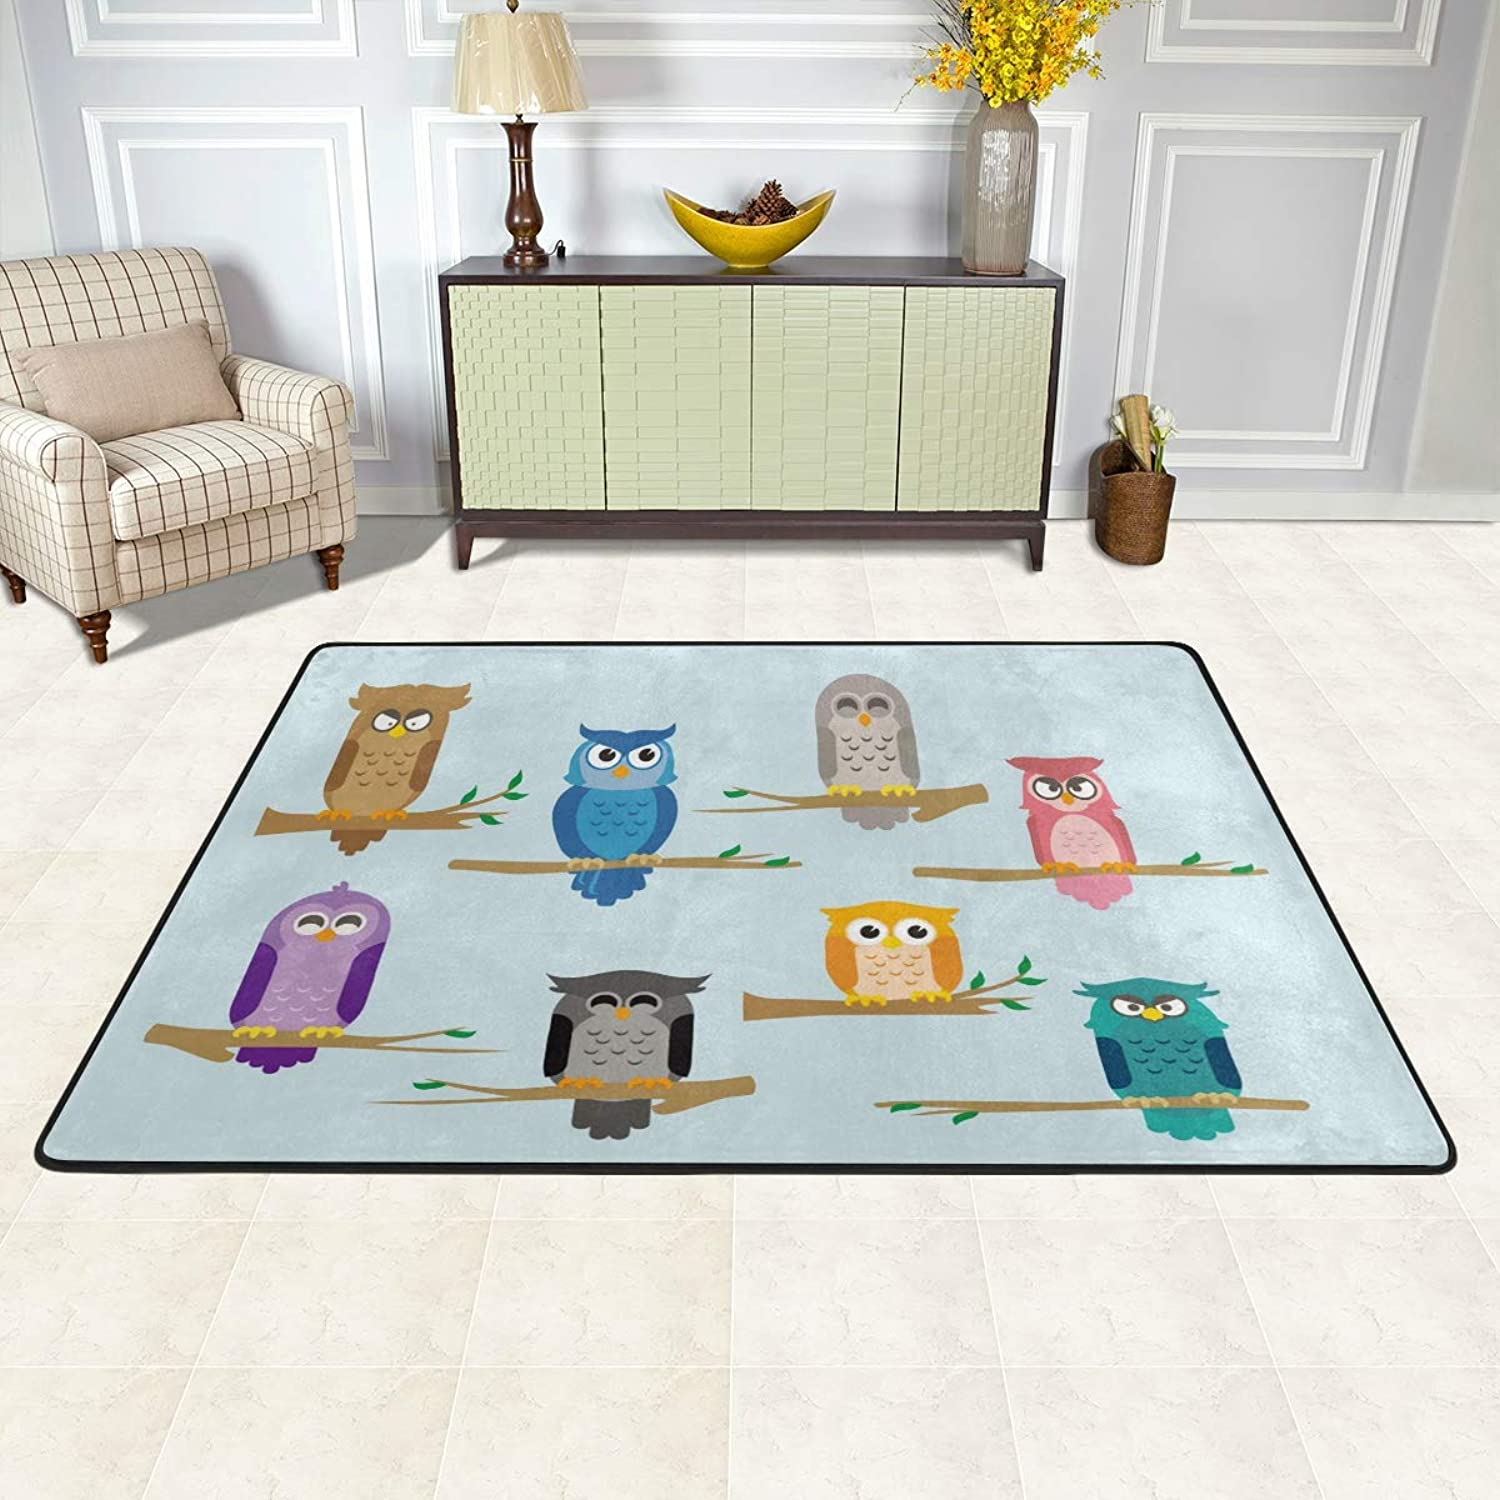 MALPLENA Cartoon Owl Branch Rugs for Living Room Doormat Carpet Floor Mats shoes Scraper for Living Room Dining Room Bedroom Kitchen Non Slip